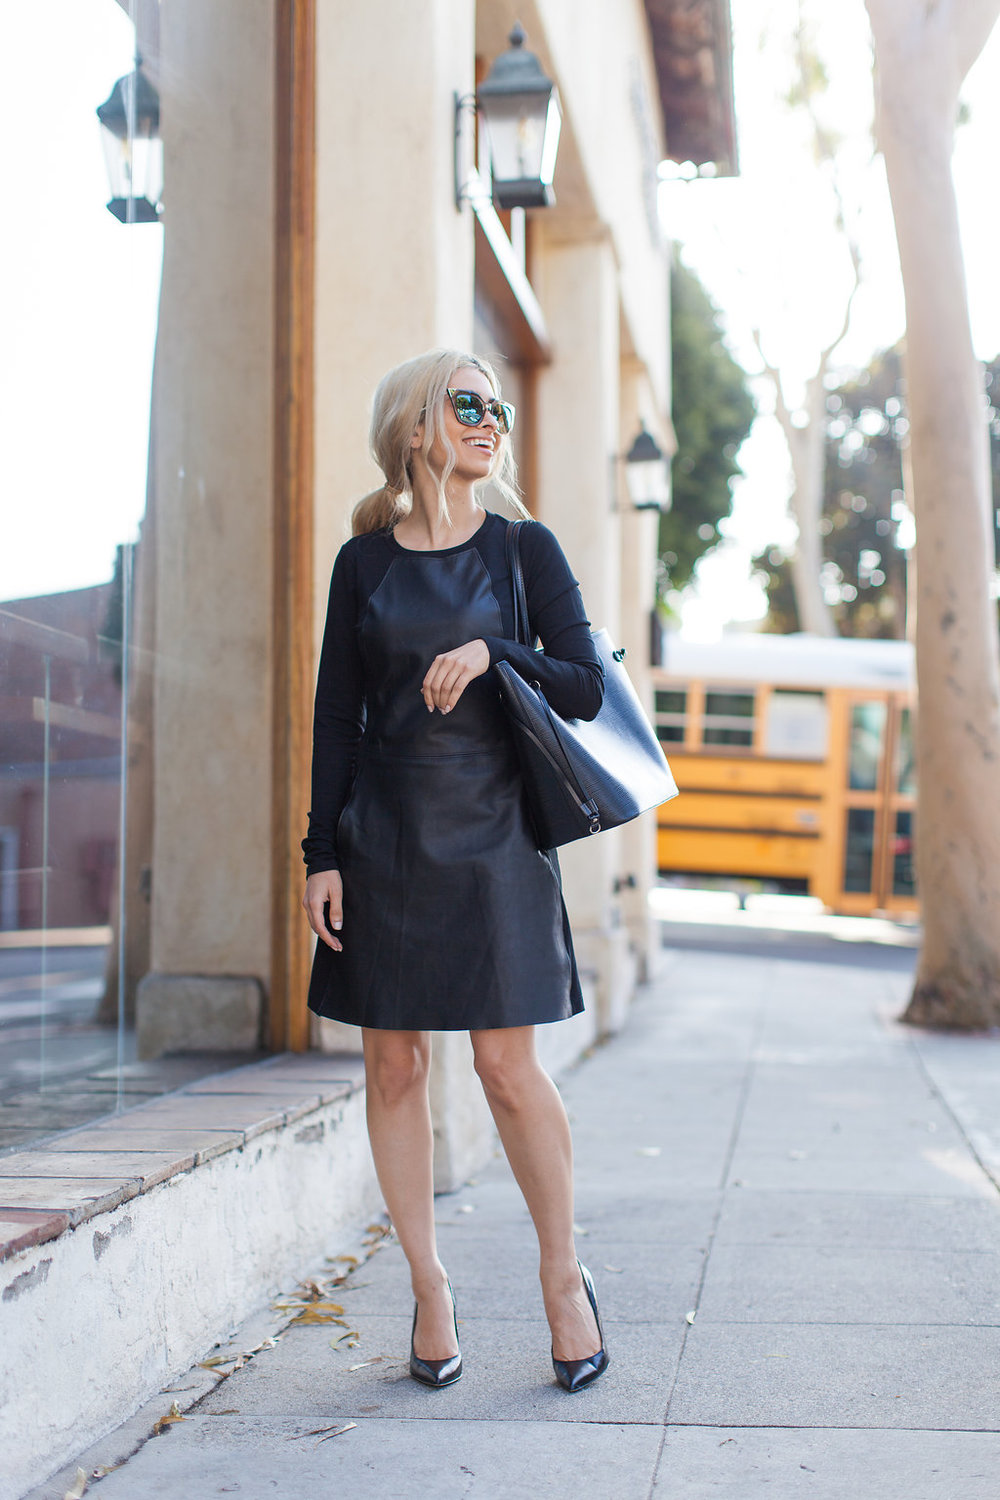 savvy javvy_work dress_best work dress_comfortable work wear_corporate fashion_michael stars_fendi sunglasses_sam edelman heels-Louis Vuitton bag_icy blonde hair_blonde lob_ponytail style